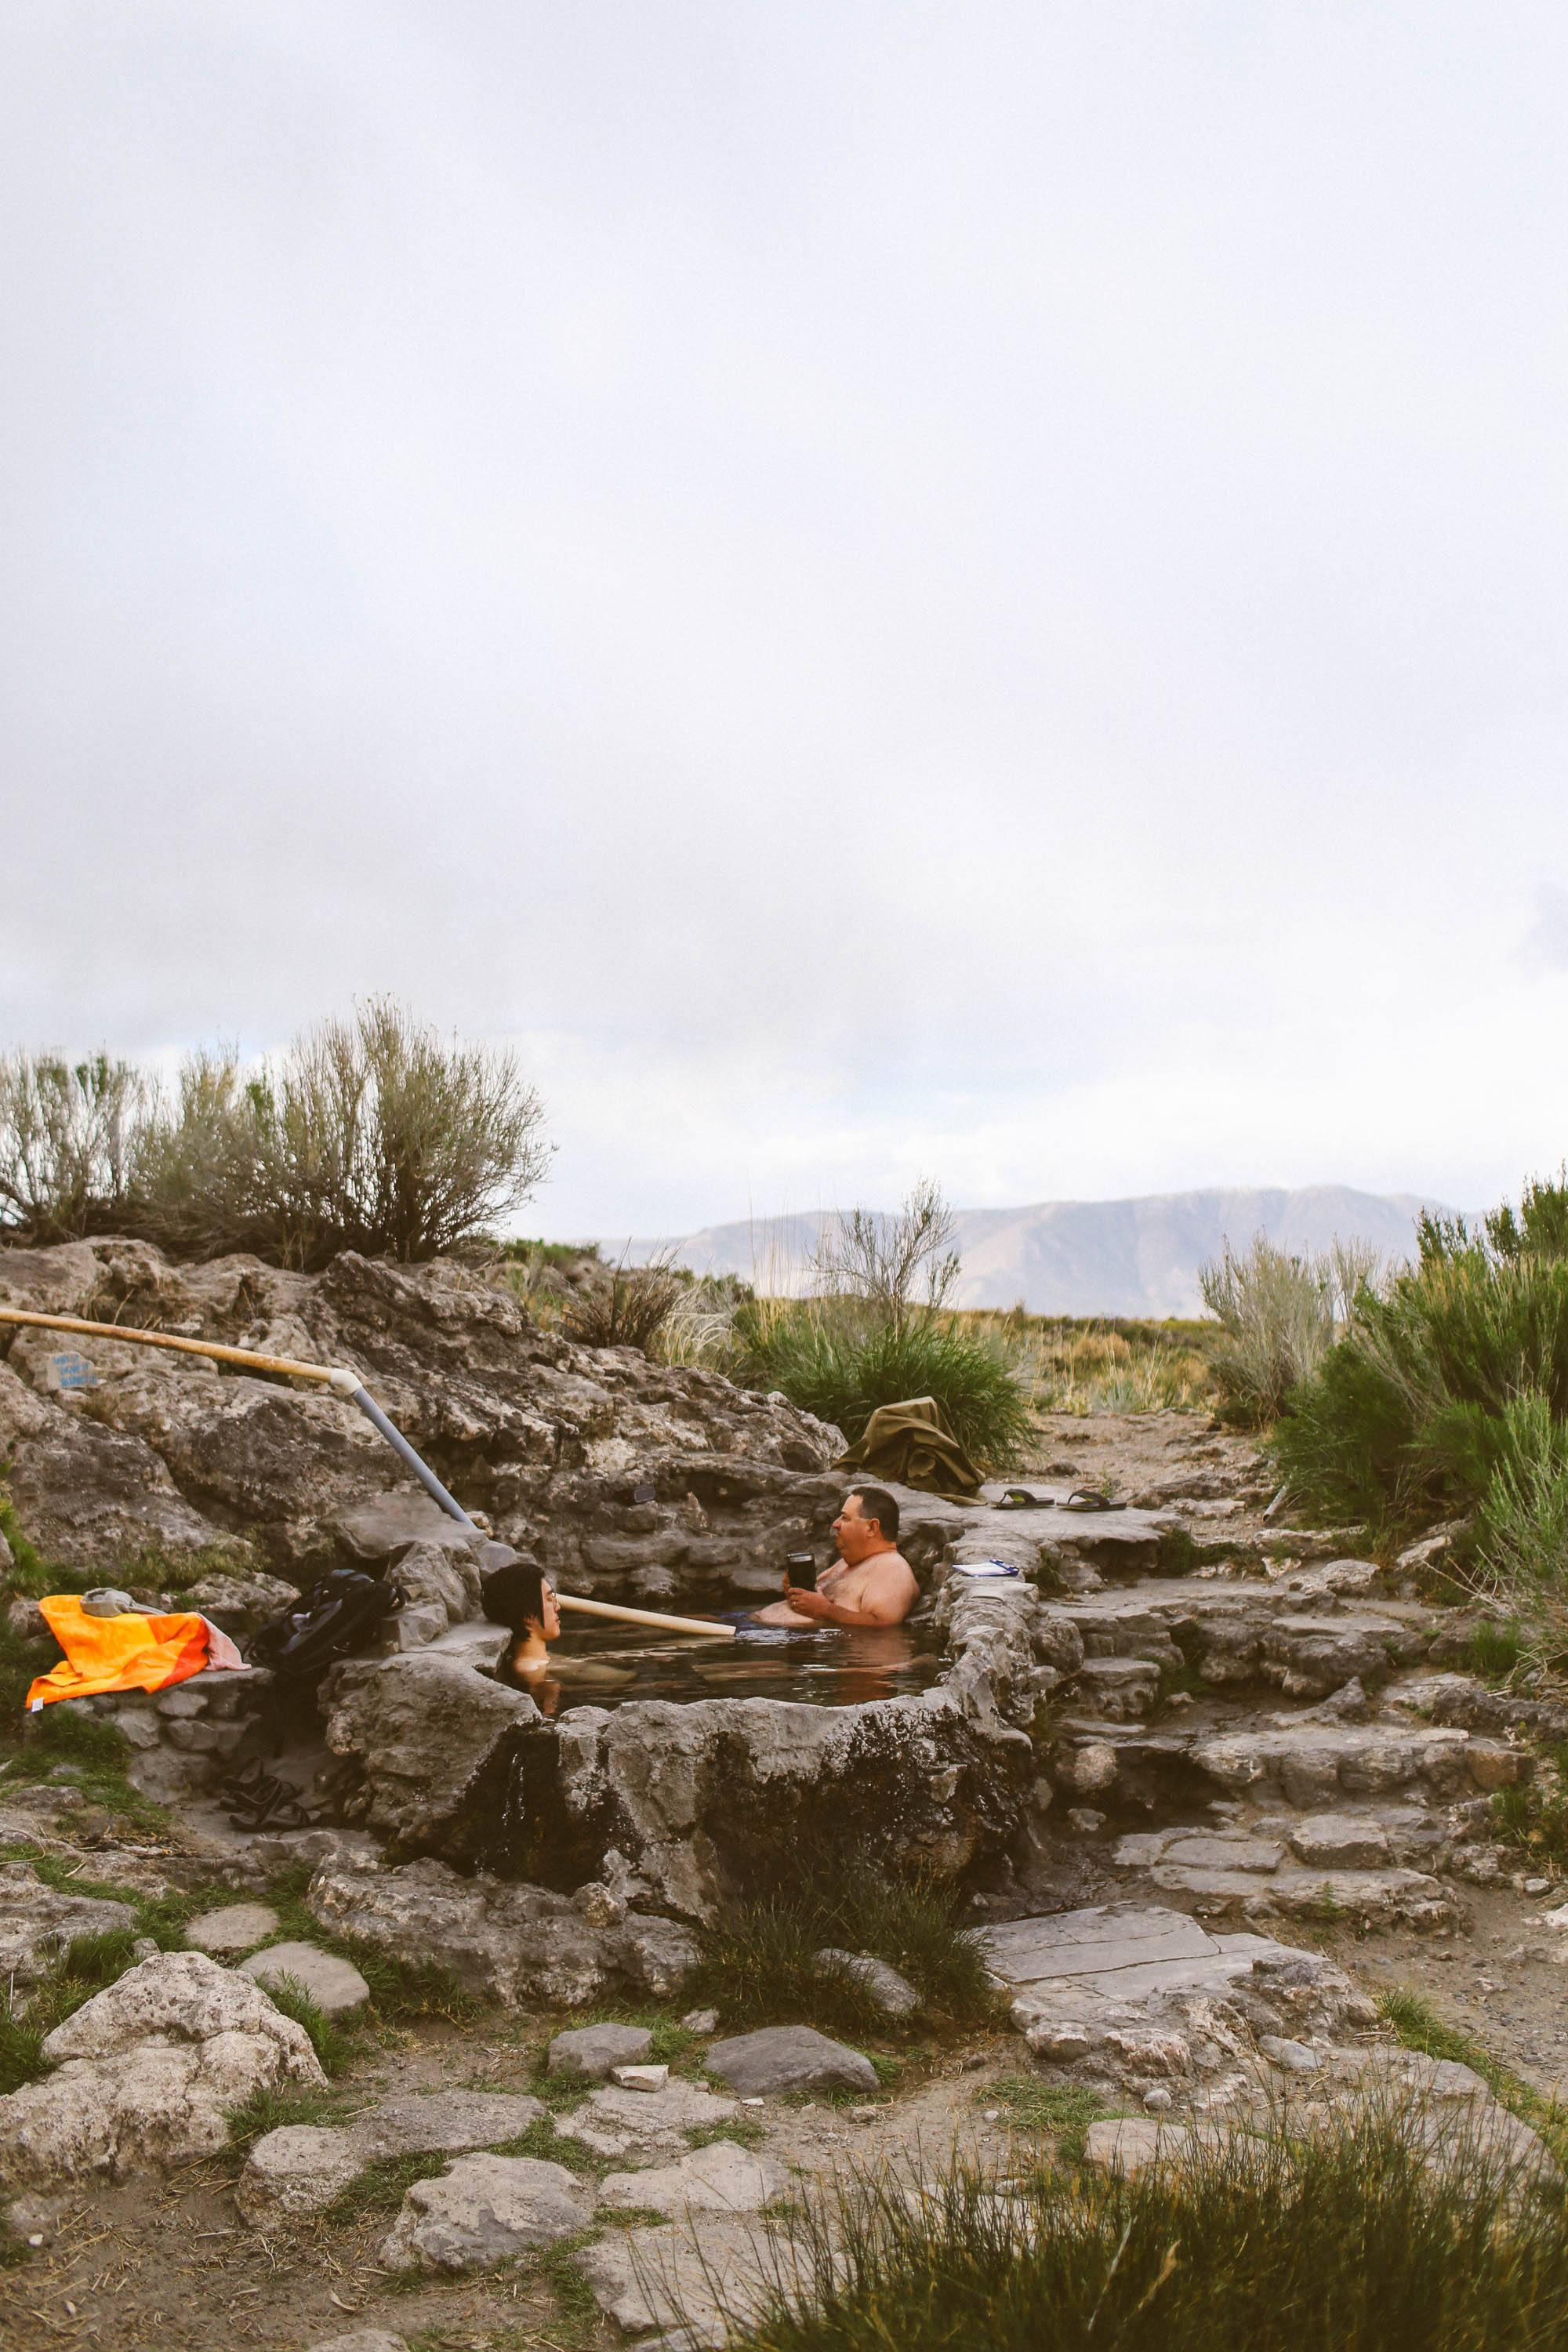 two people sitting in hot springs in the mountains